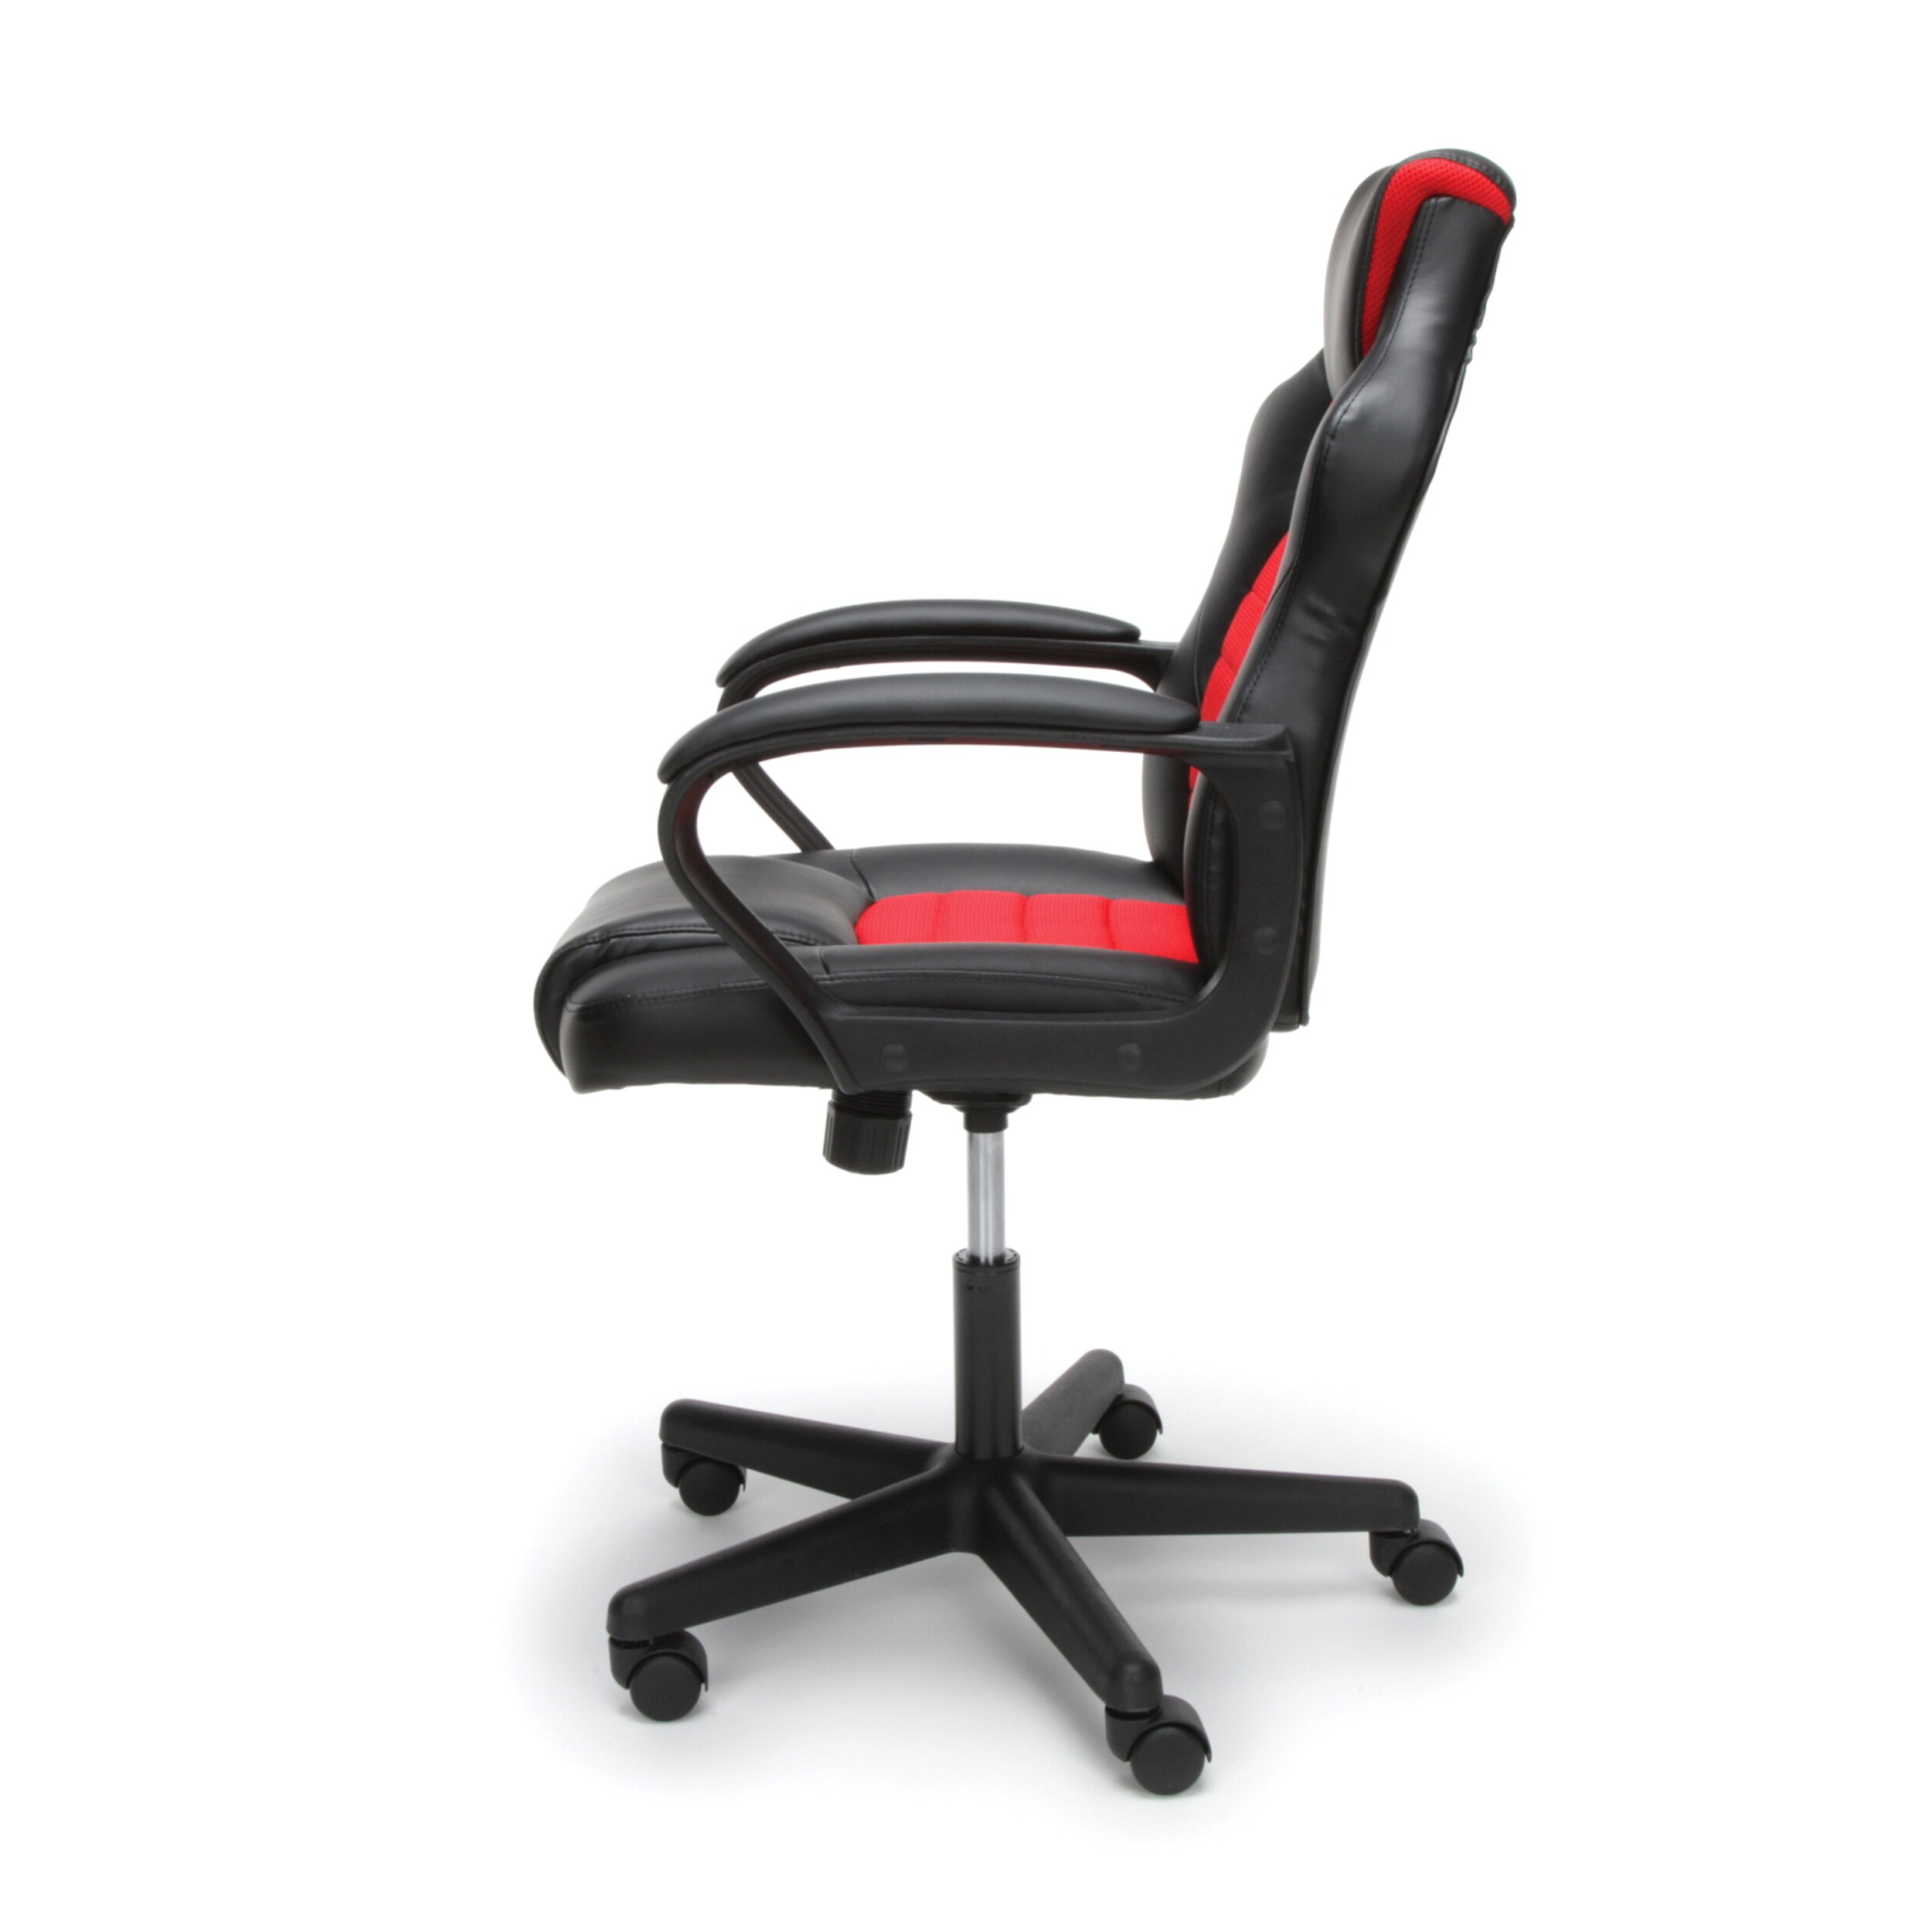 Essentials by OFM ESS-3083 Racing Style Gaming Chair, Red 3